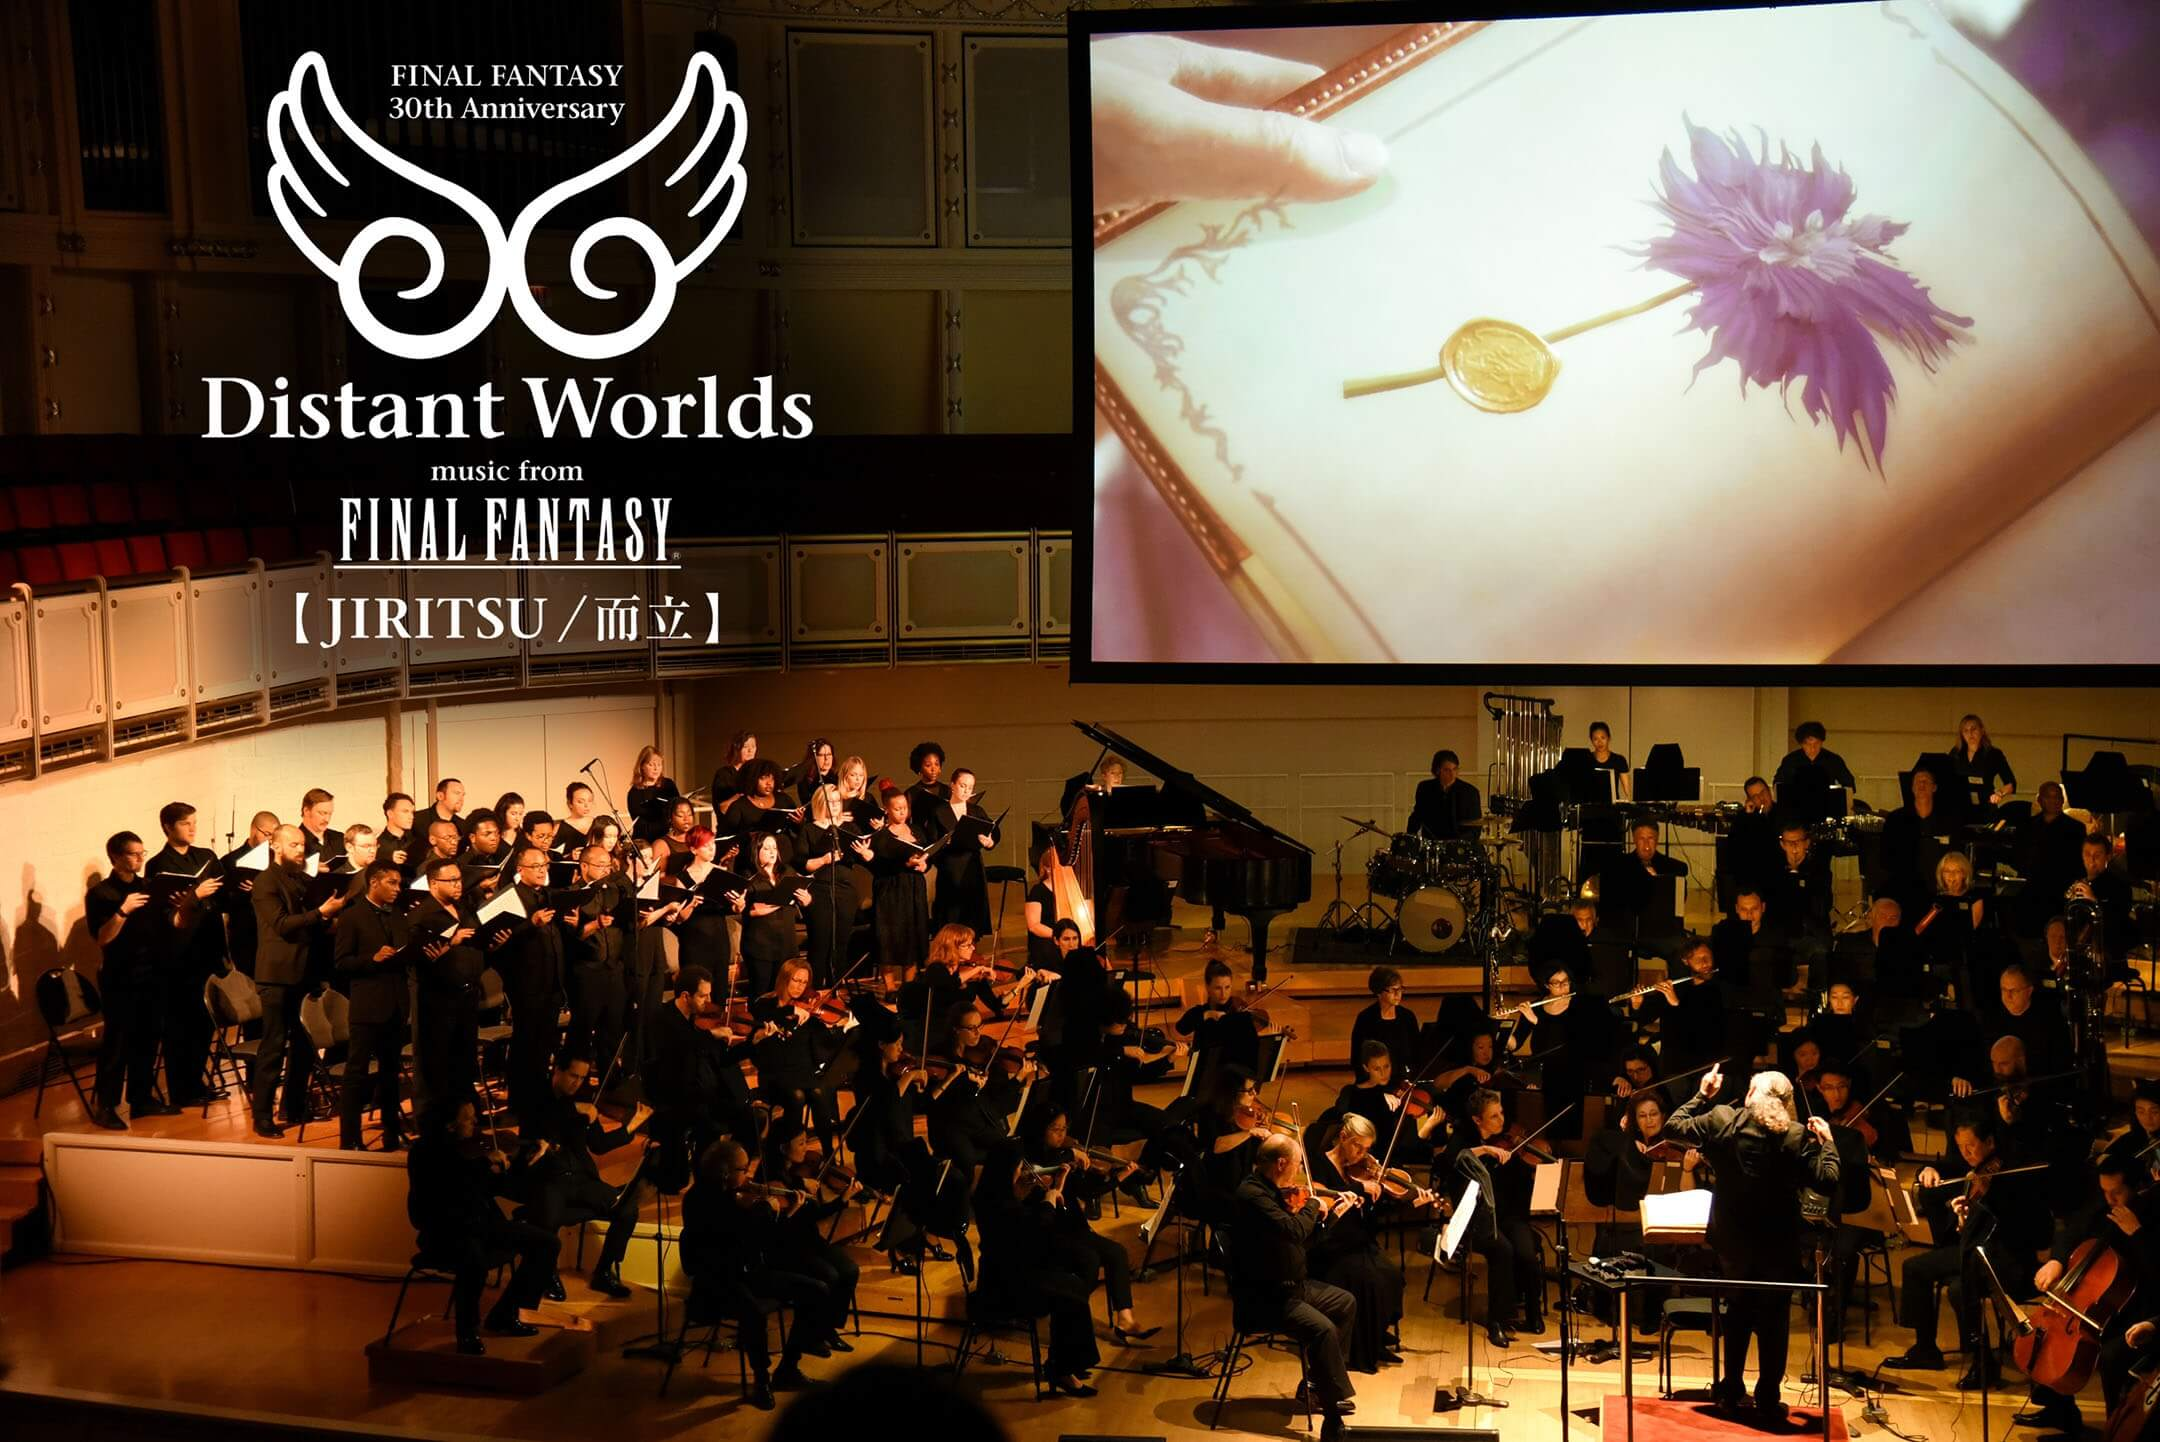 Final Fantasy Distant Worlds 30th Anniversary Jiritsu